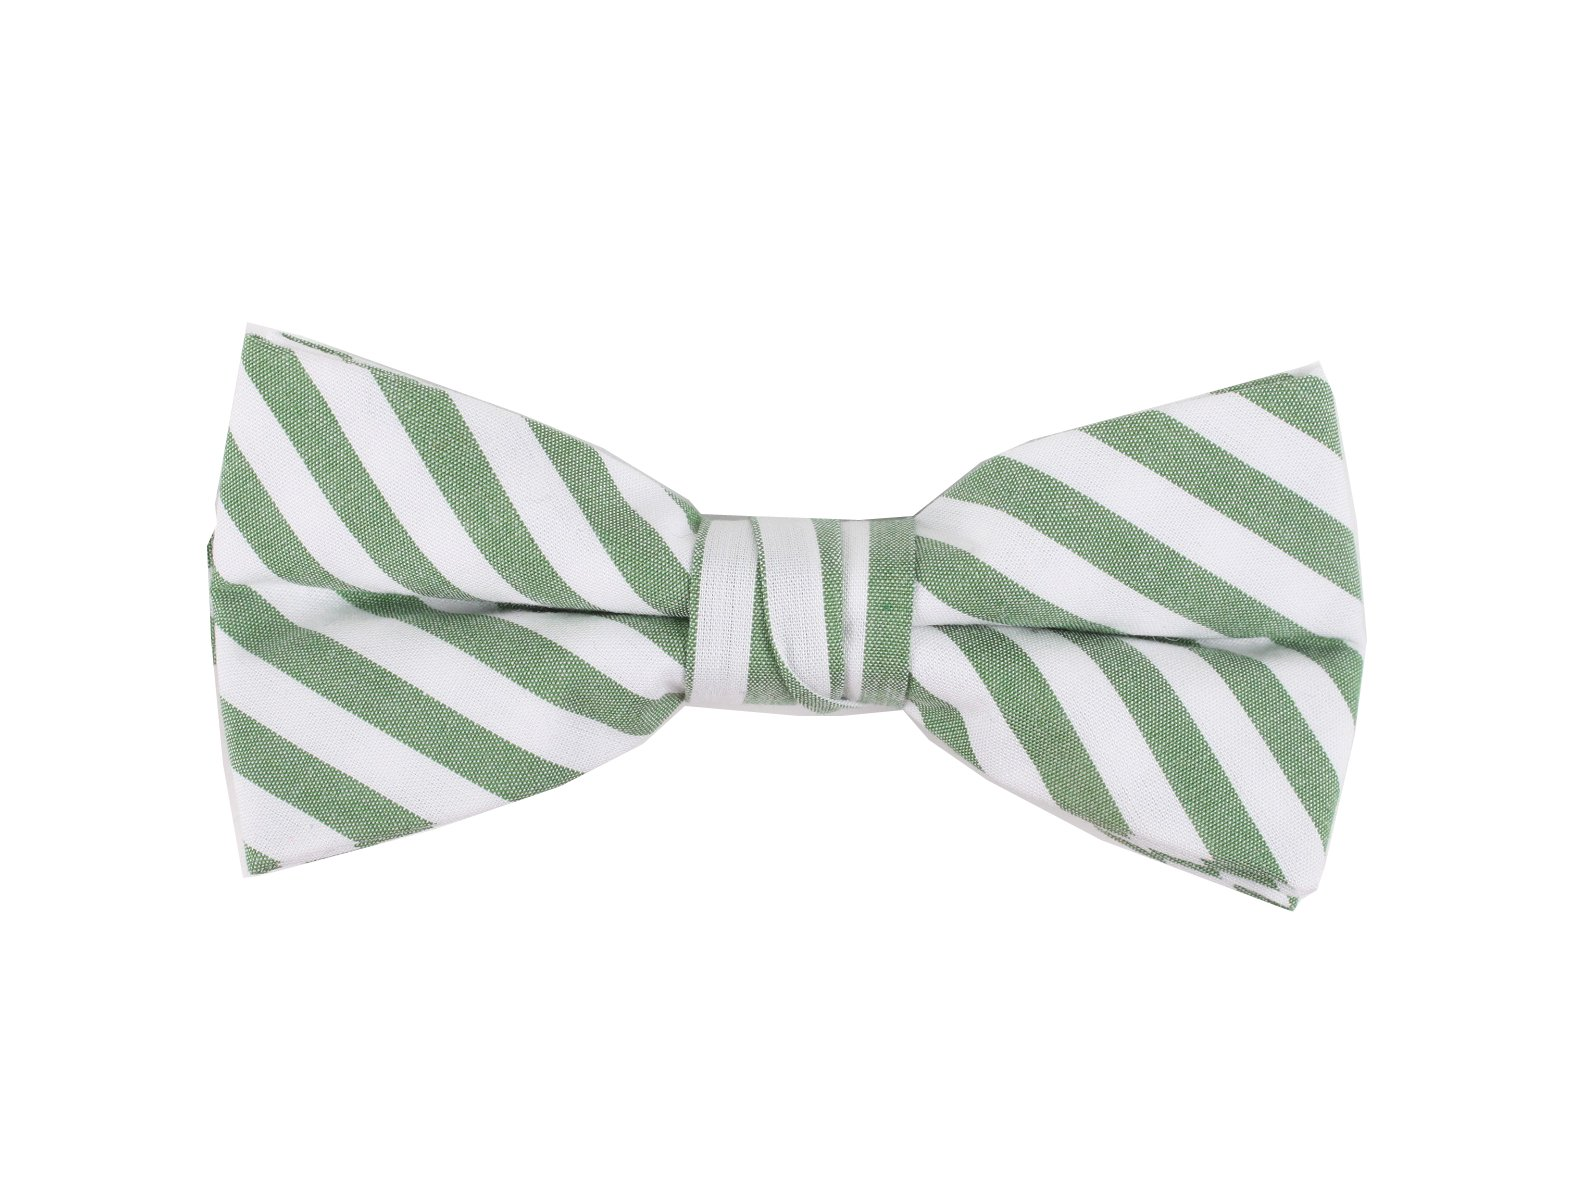 Born to Love - Boys Kids Pre Tied Adjustable Bowtie Christmas Holiday Party Dress Up (Medium, Green White Stripes)